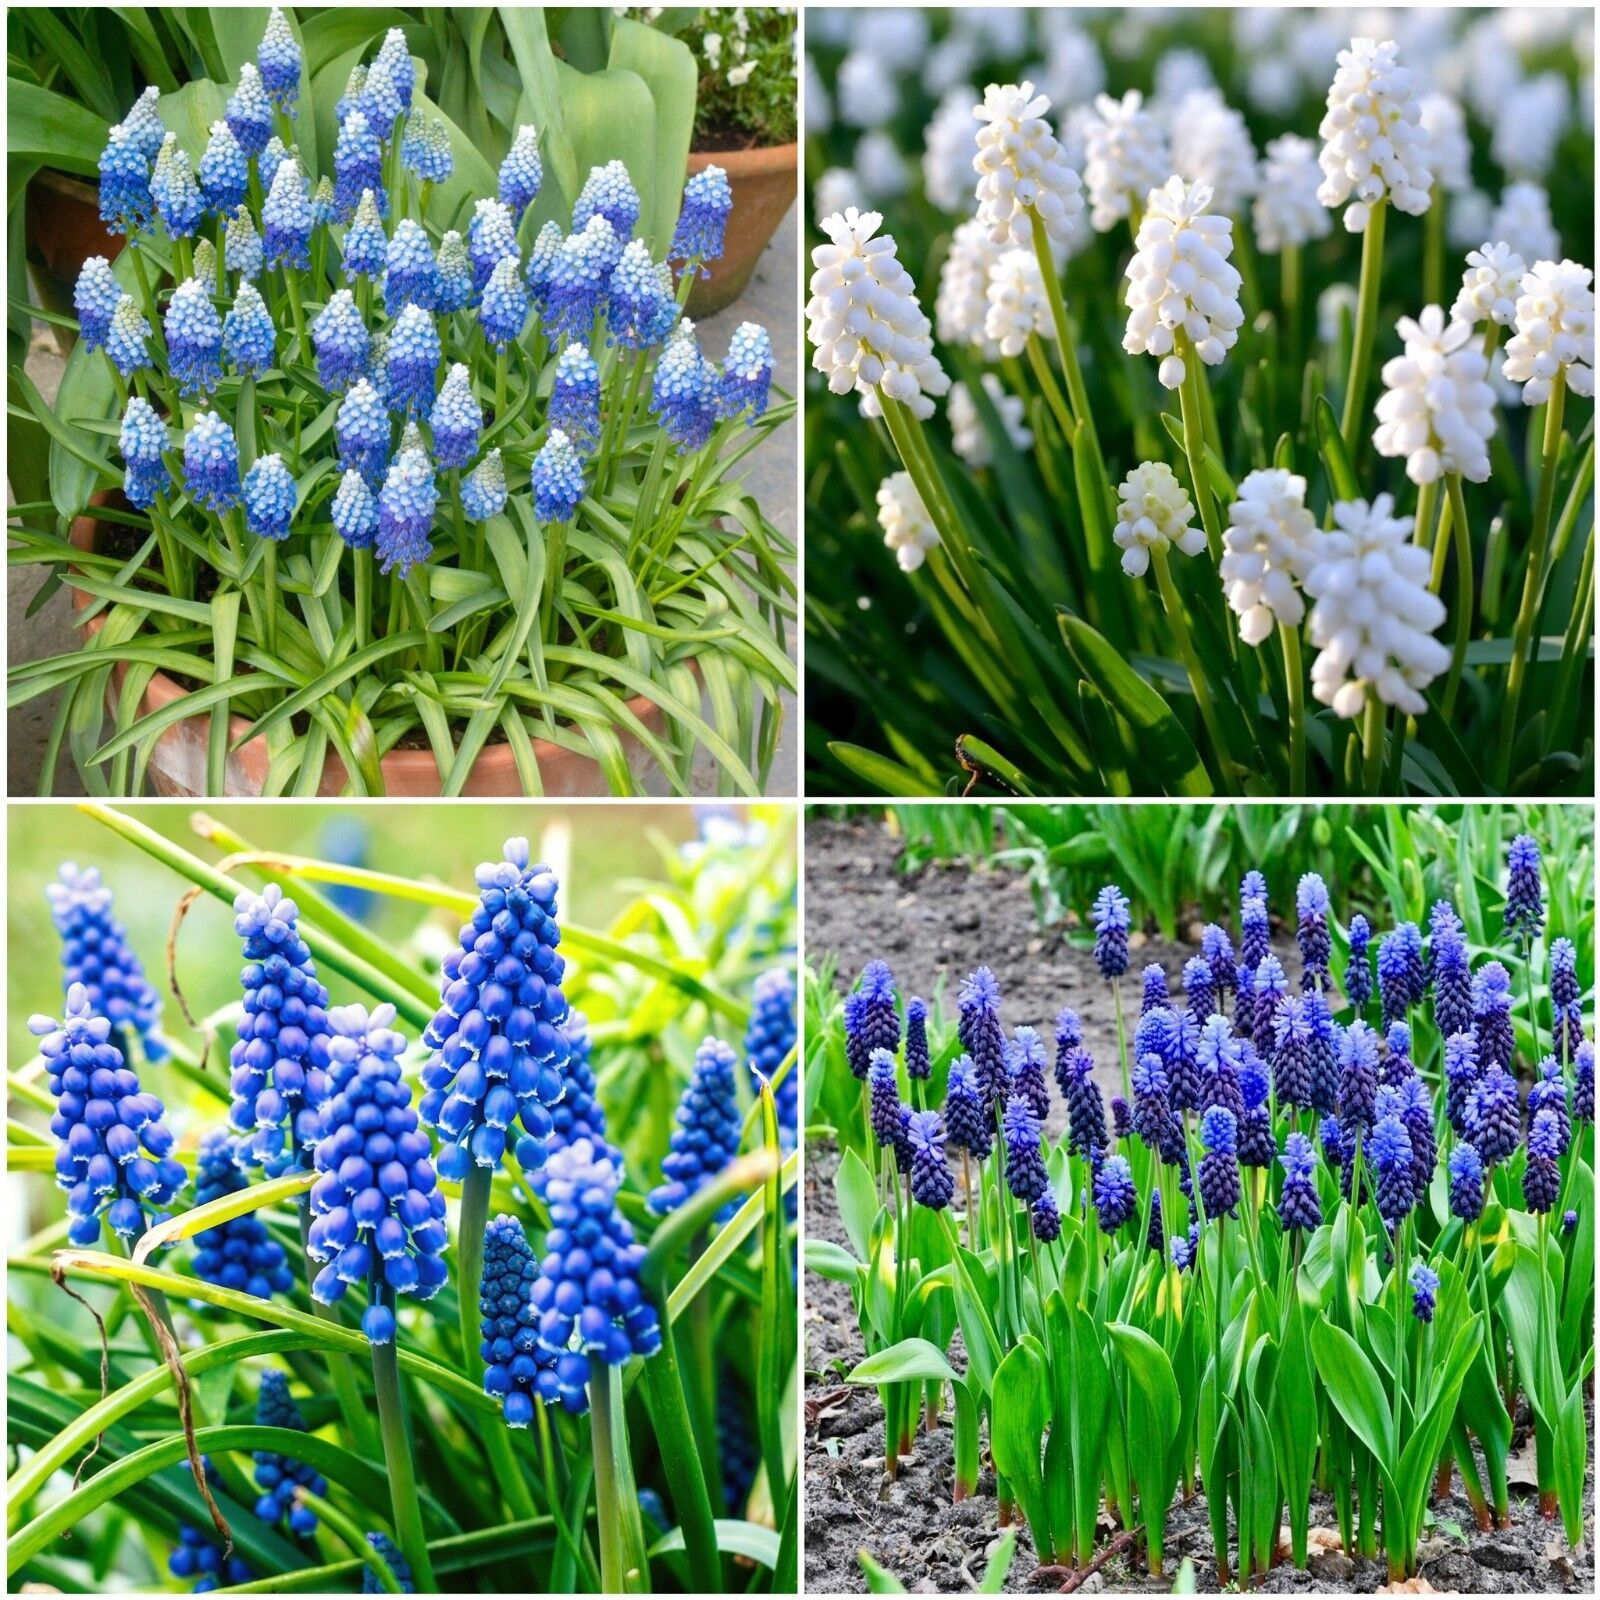 100 ENGLISH WOODLAND ACONITE BULBSActively GrowingPlant With Snowdrops